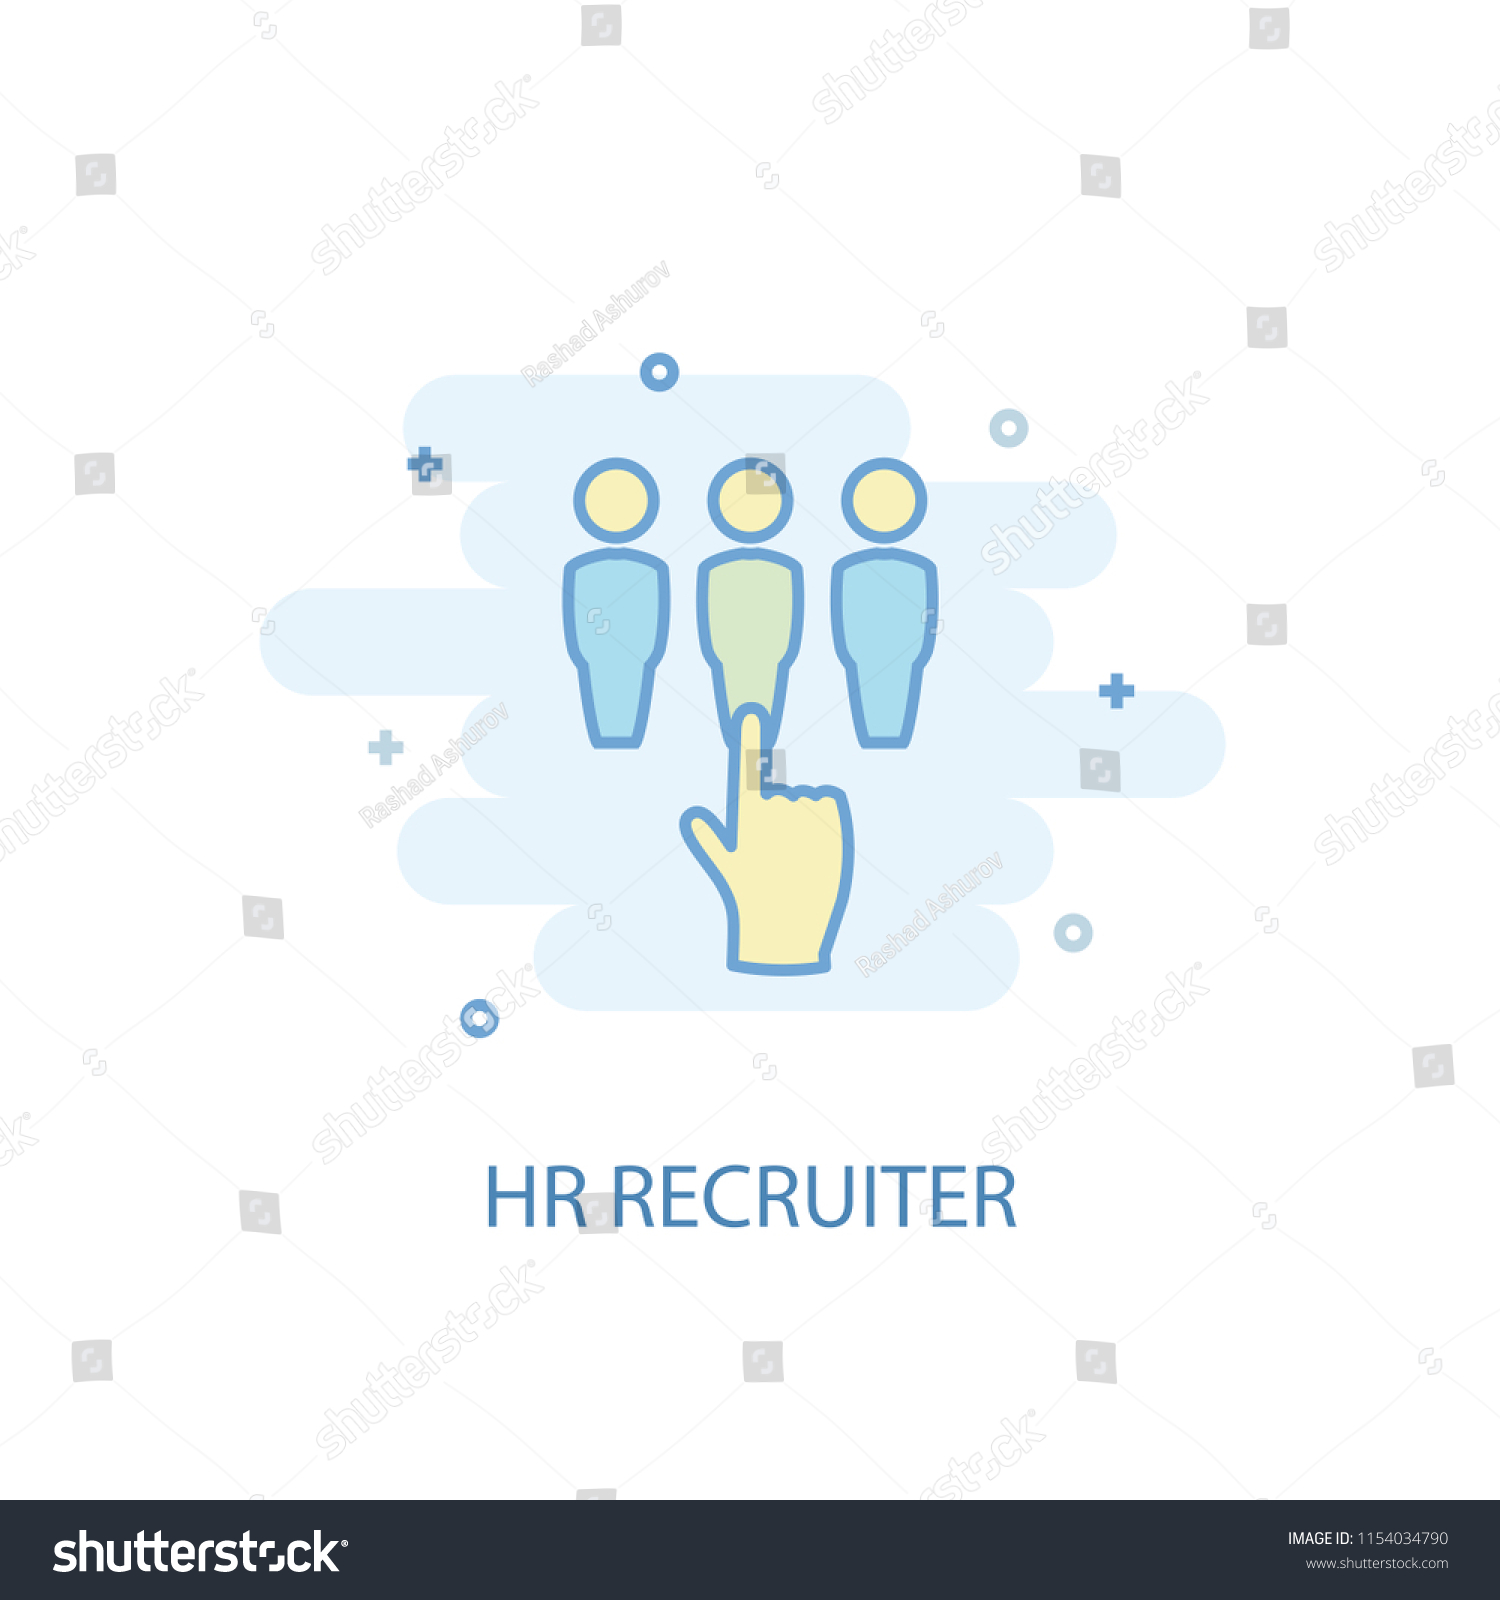 hight resolution of hr recruiter concept trendy icon simple line colored illustration hr recruiter concept symbol